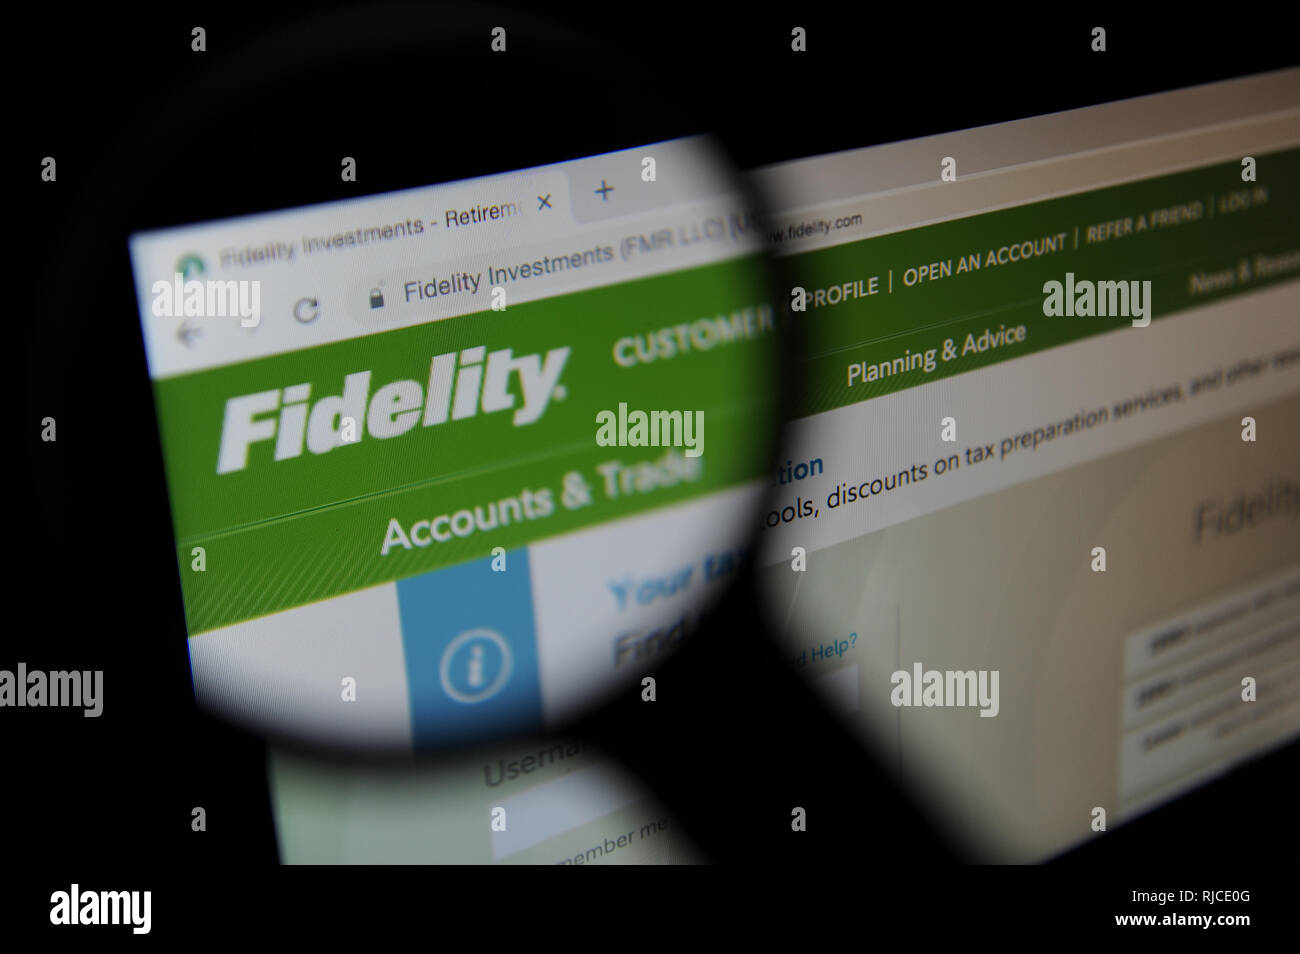 Website of the multinational financial services corporation Fidelity Investments - Stock Image